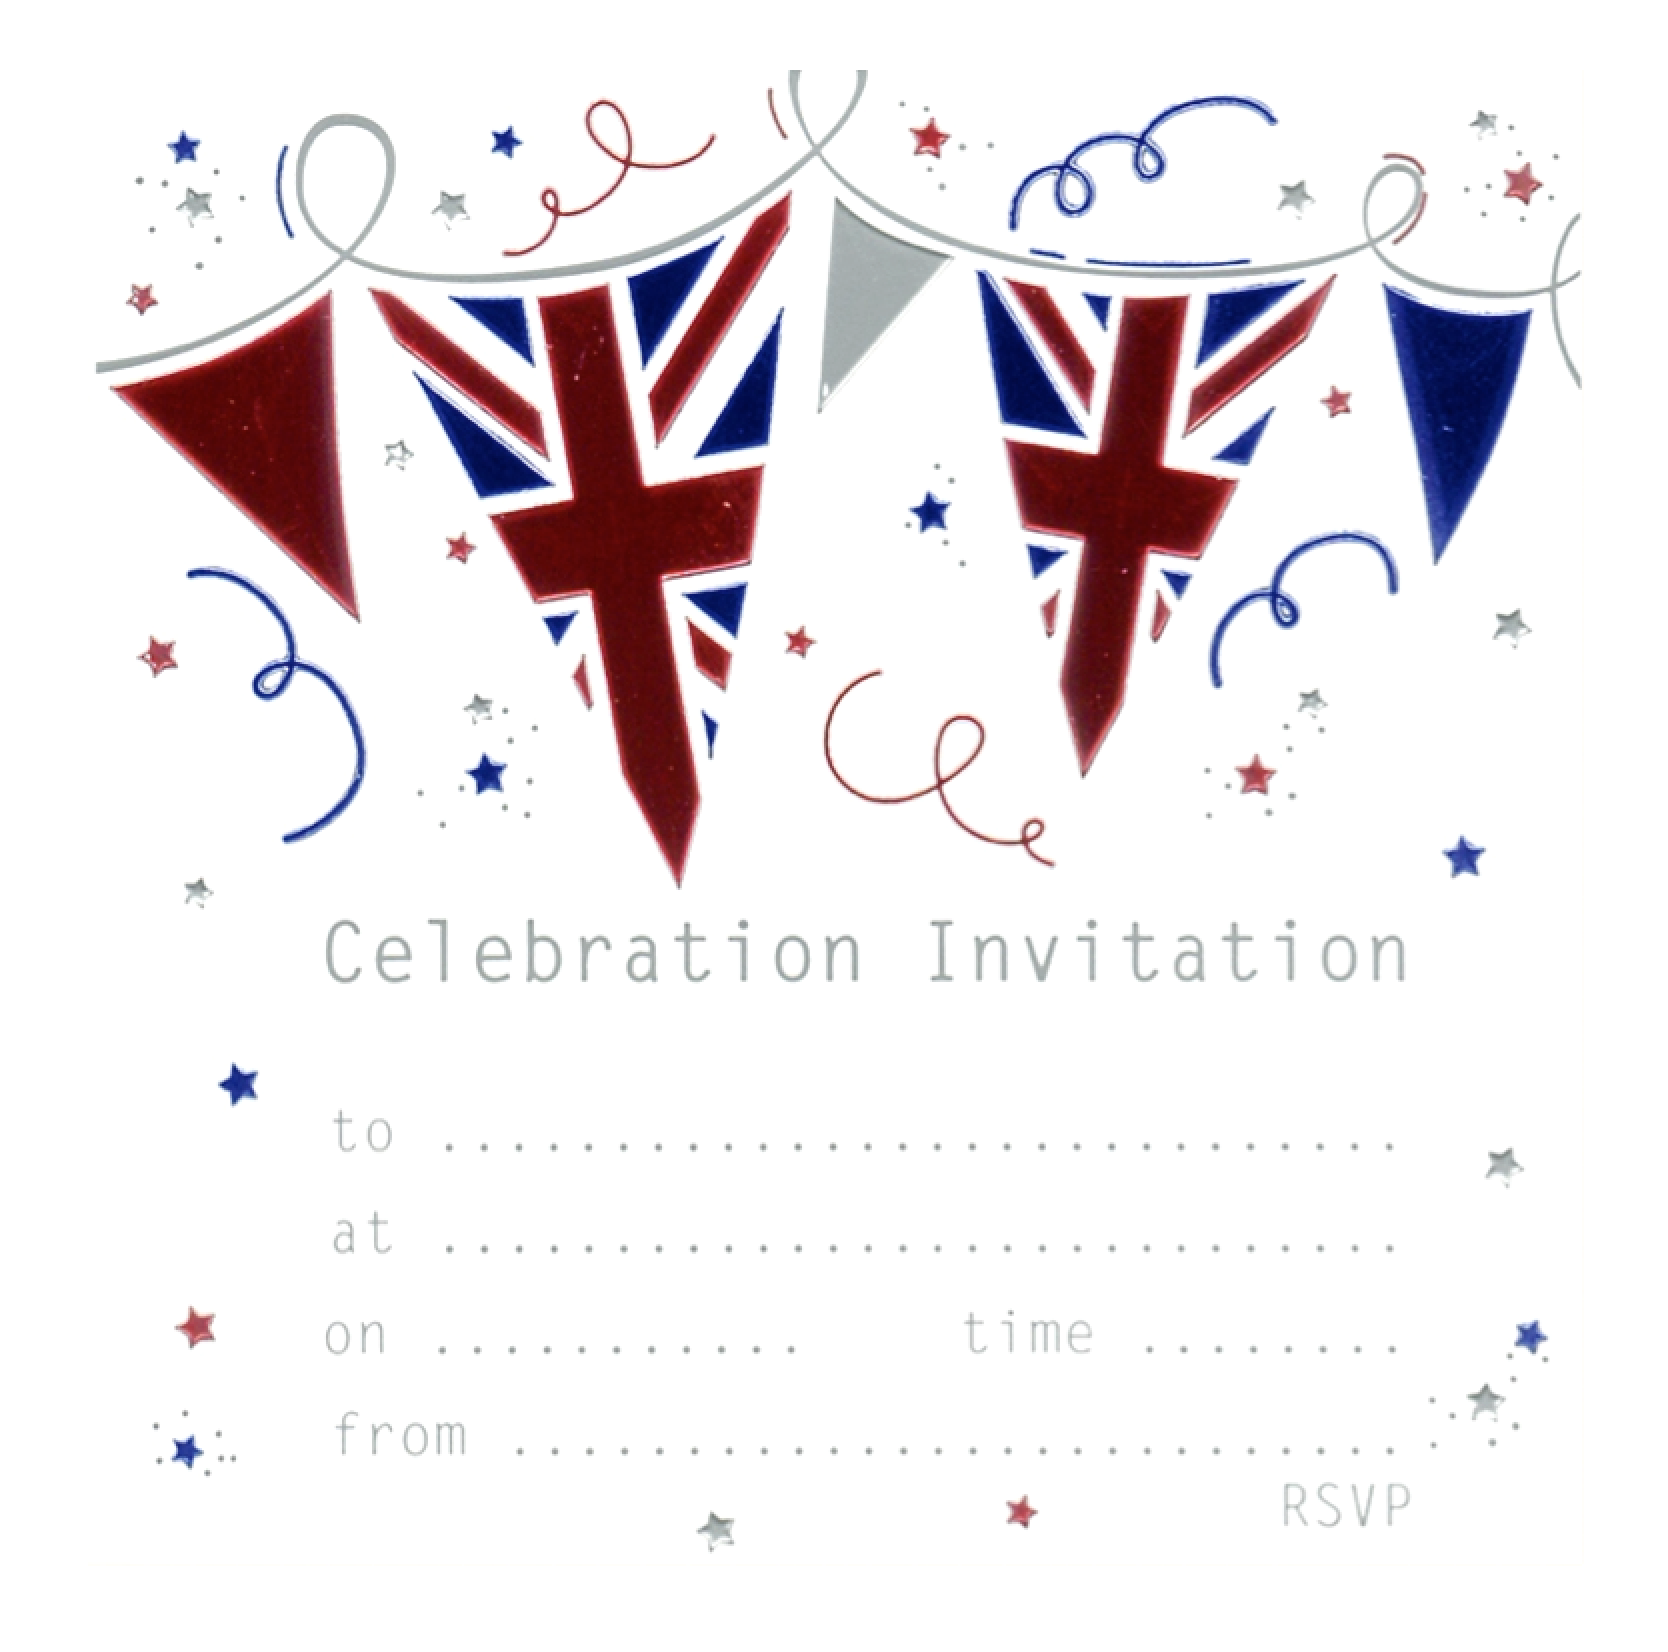 Union Jack Great Britain Jubilee Celebration Invitation Cards pack of 10